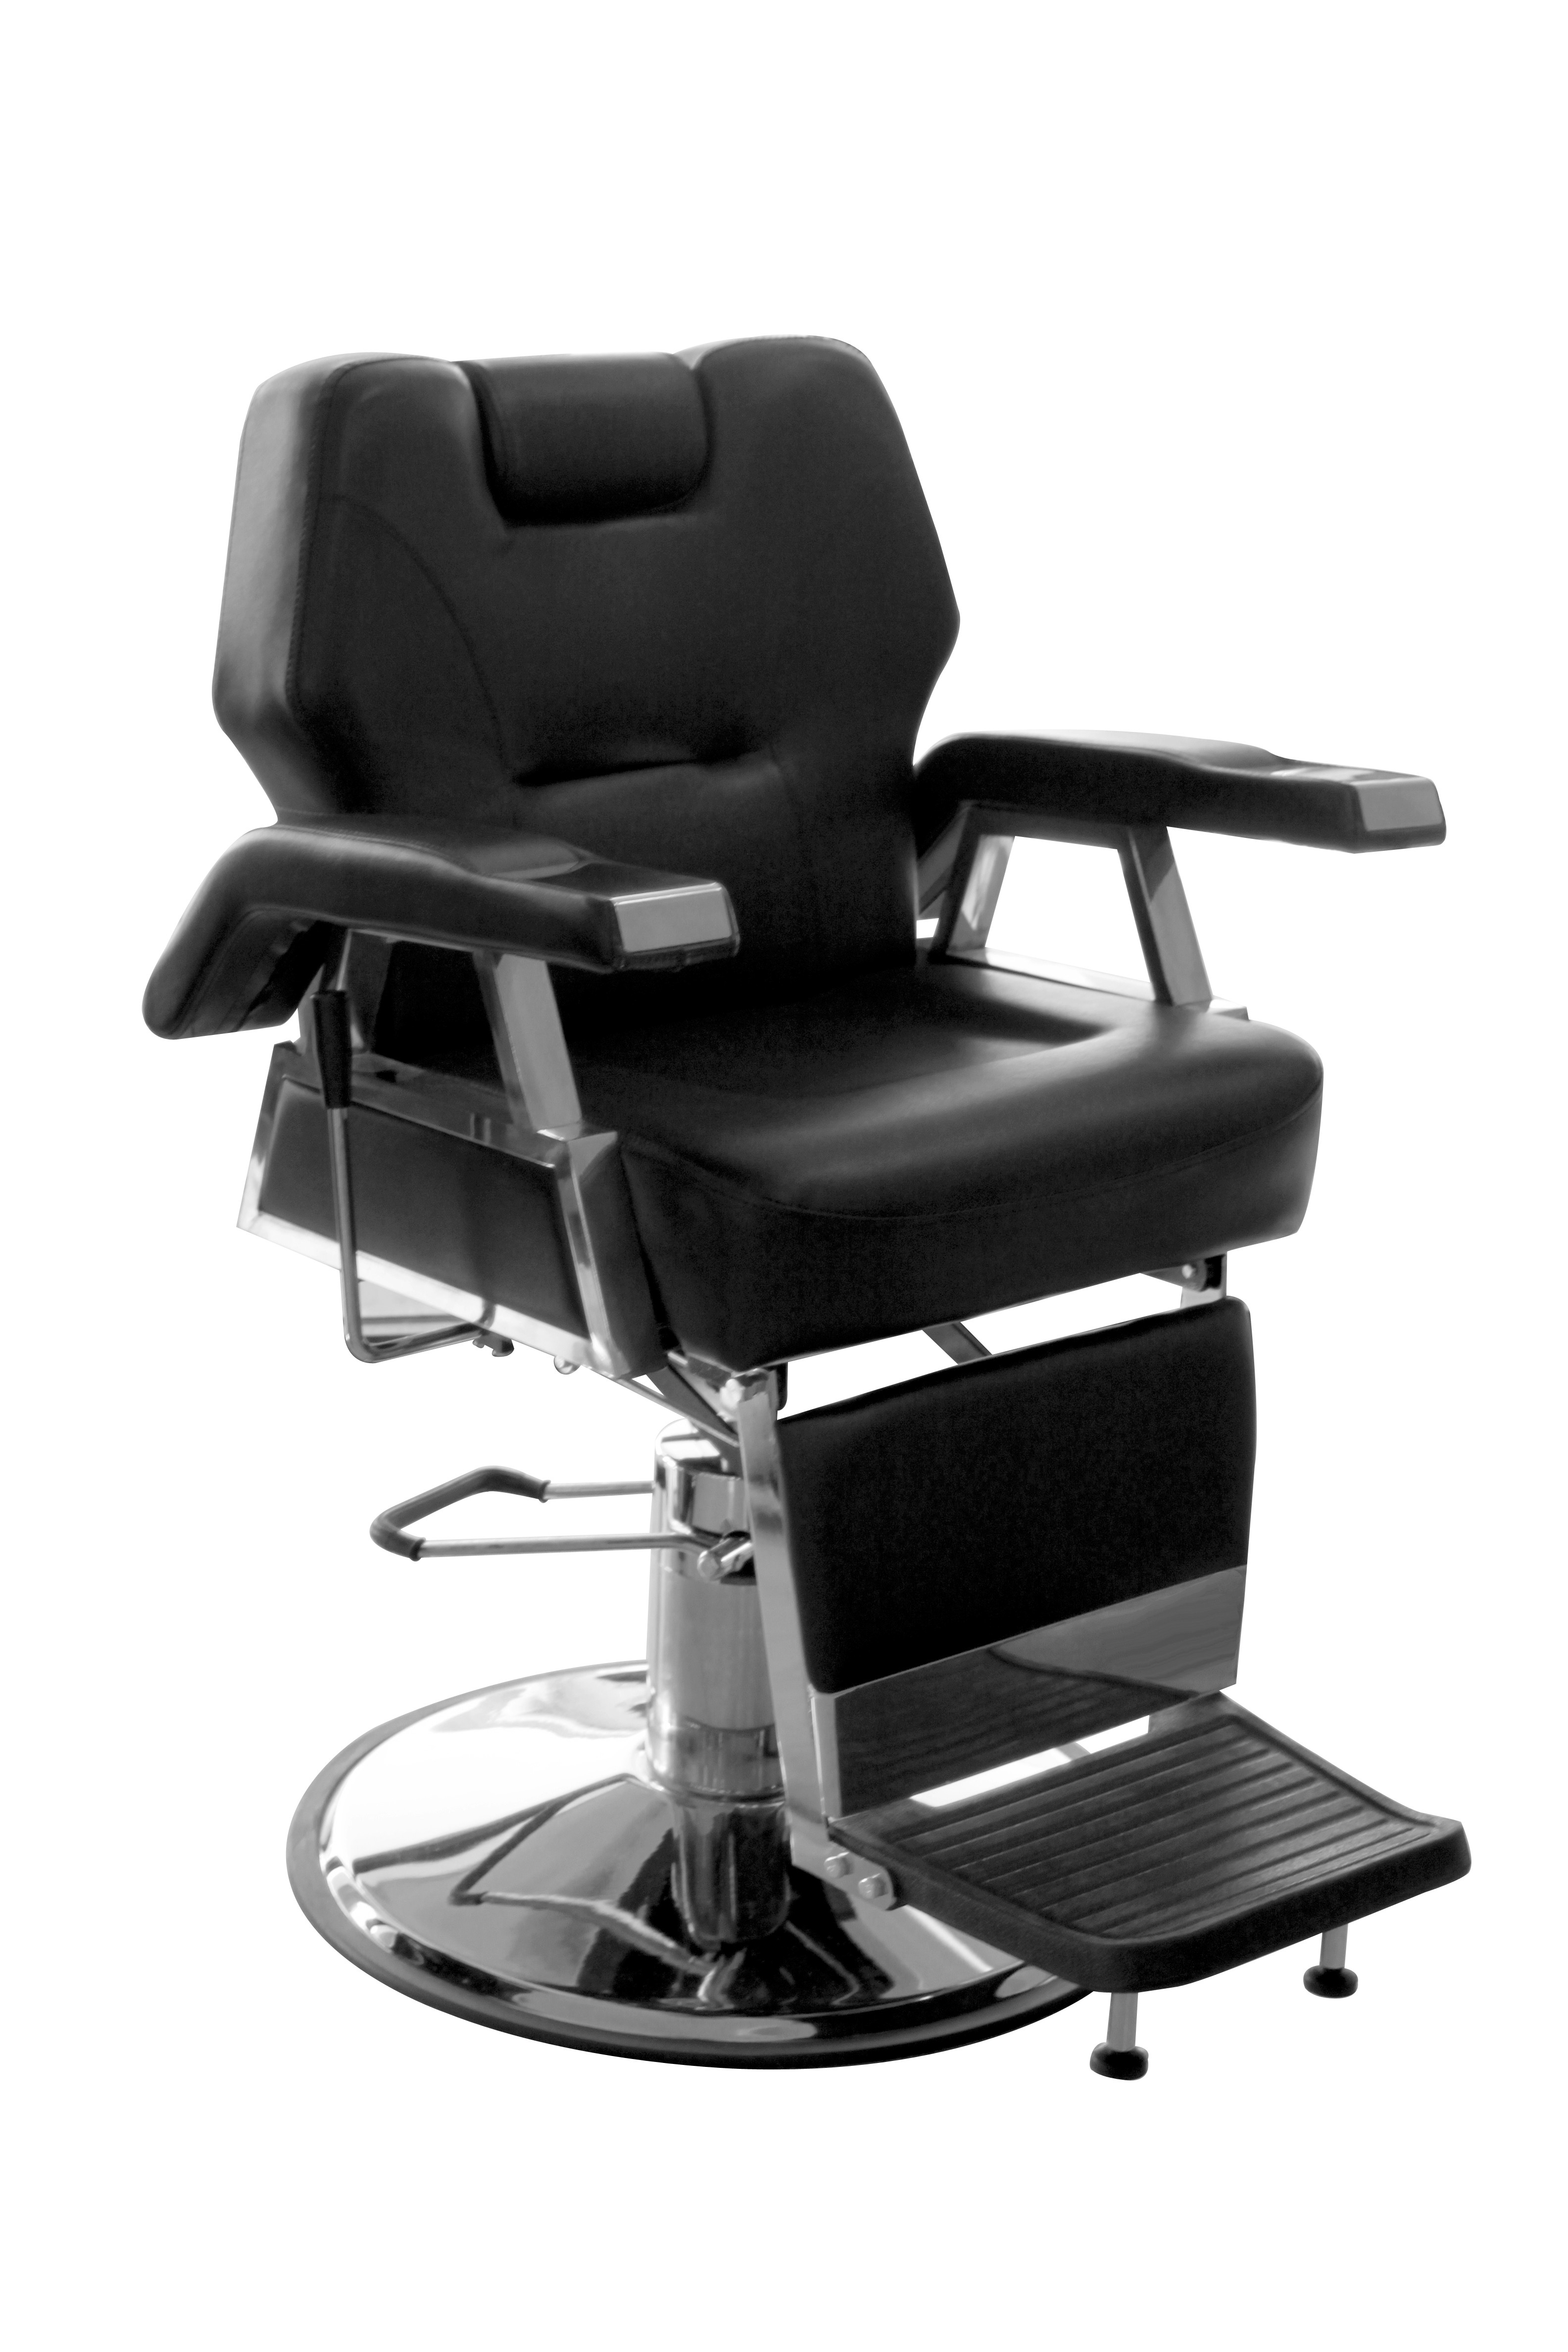 Barber Chairs : KELLER BARBER CHAIR $599.95